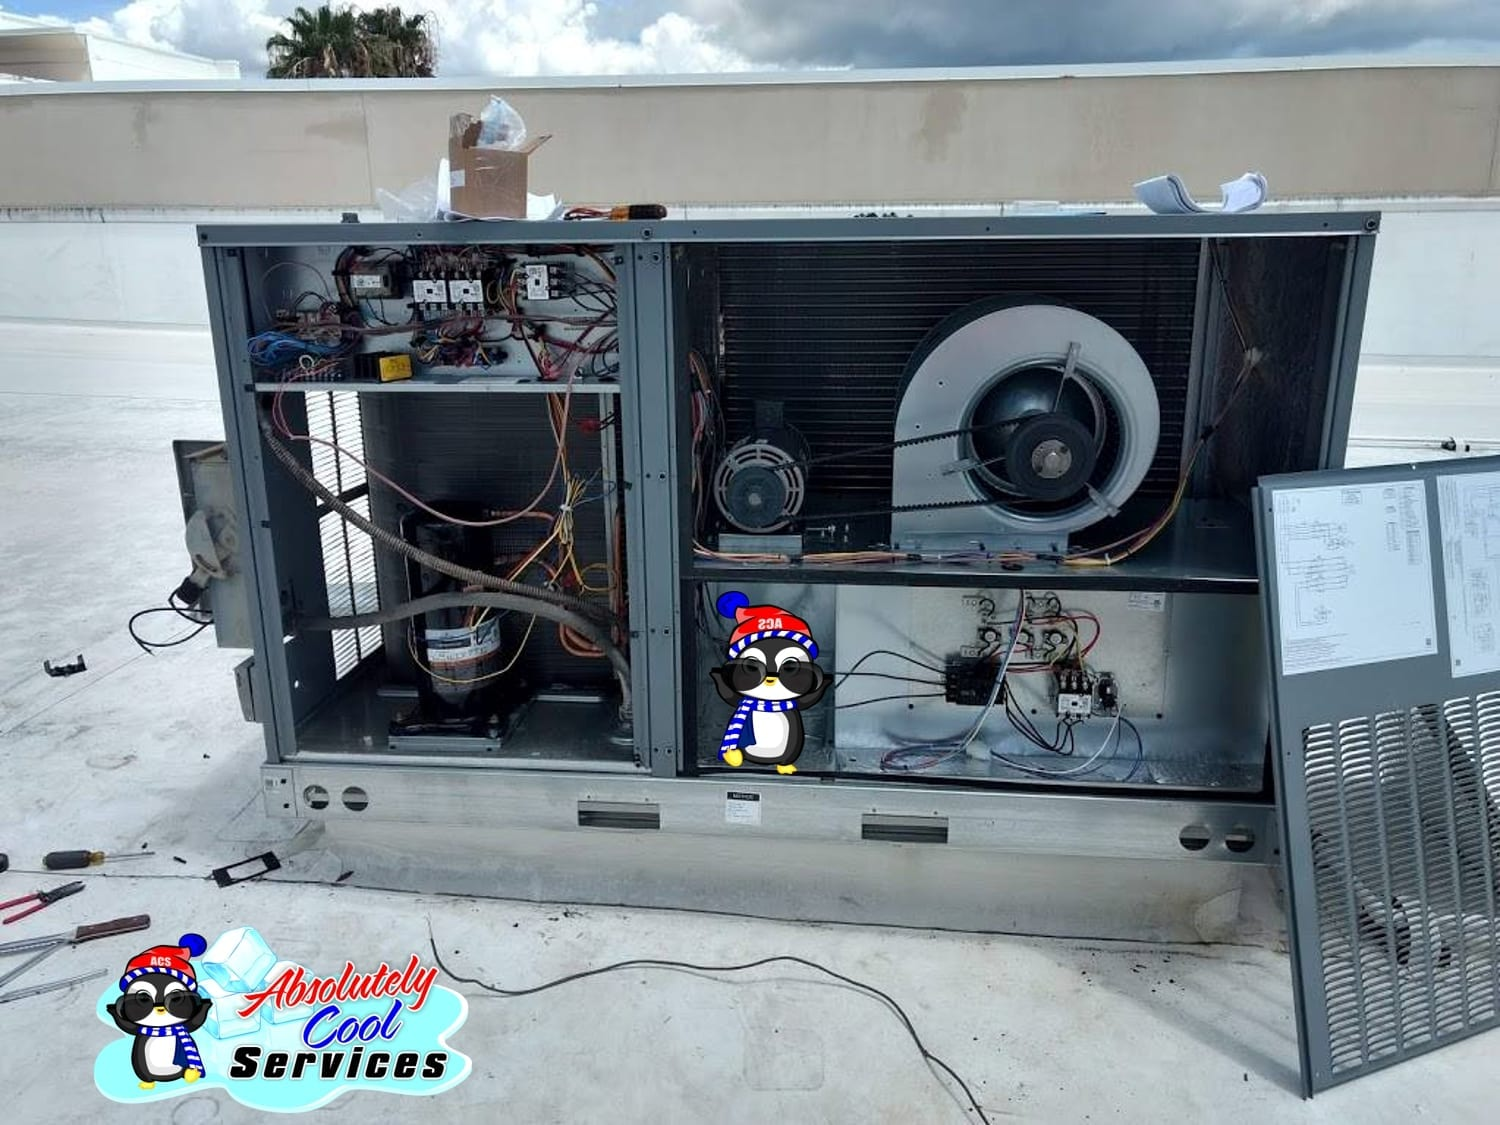 Roof Air Conditioning | Emergency Air Conditioning Repair Company near Delray Beach